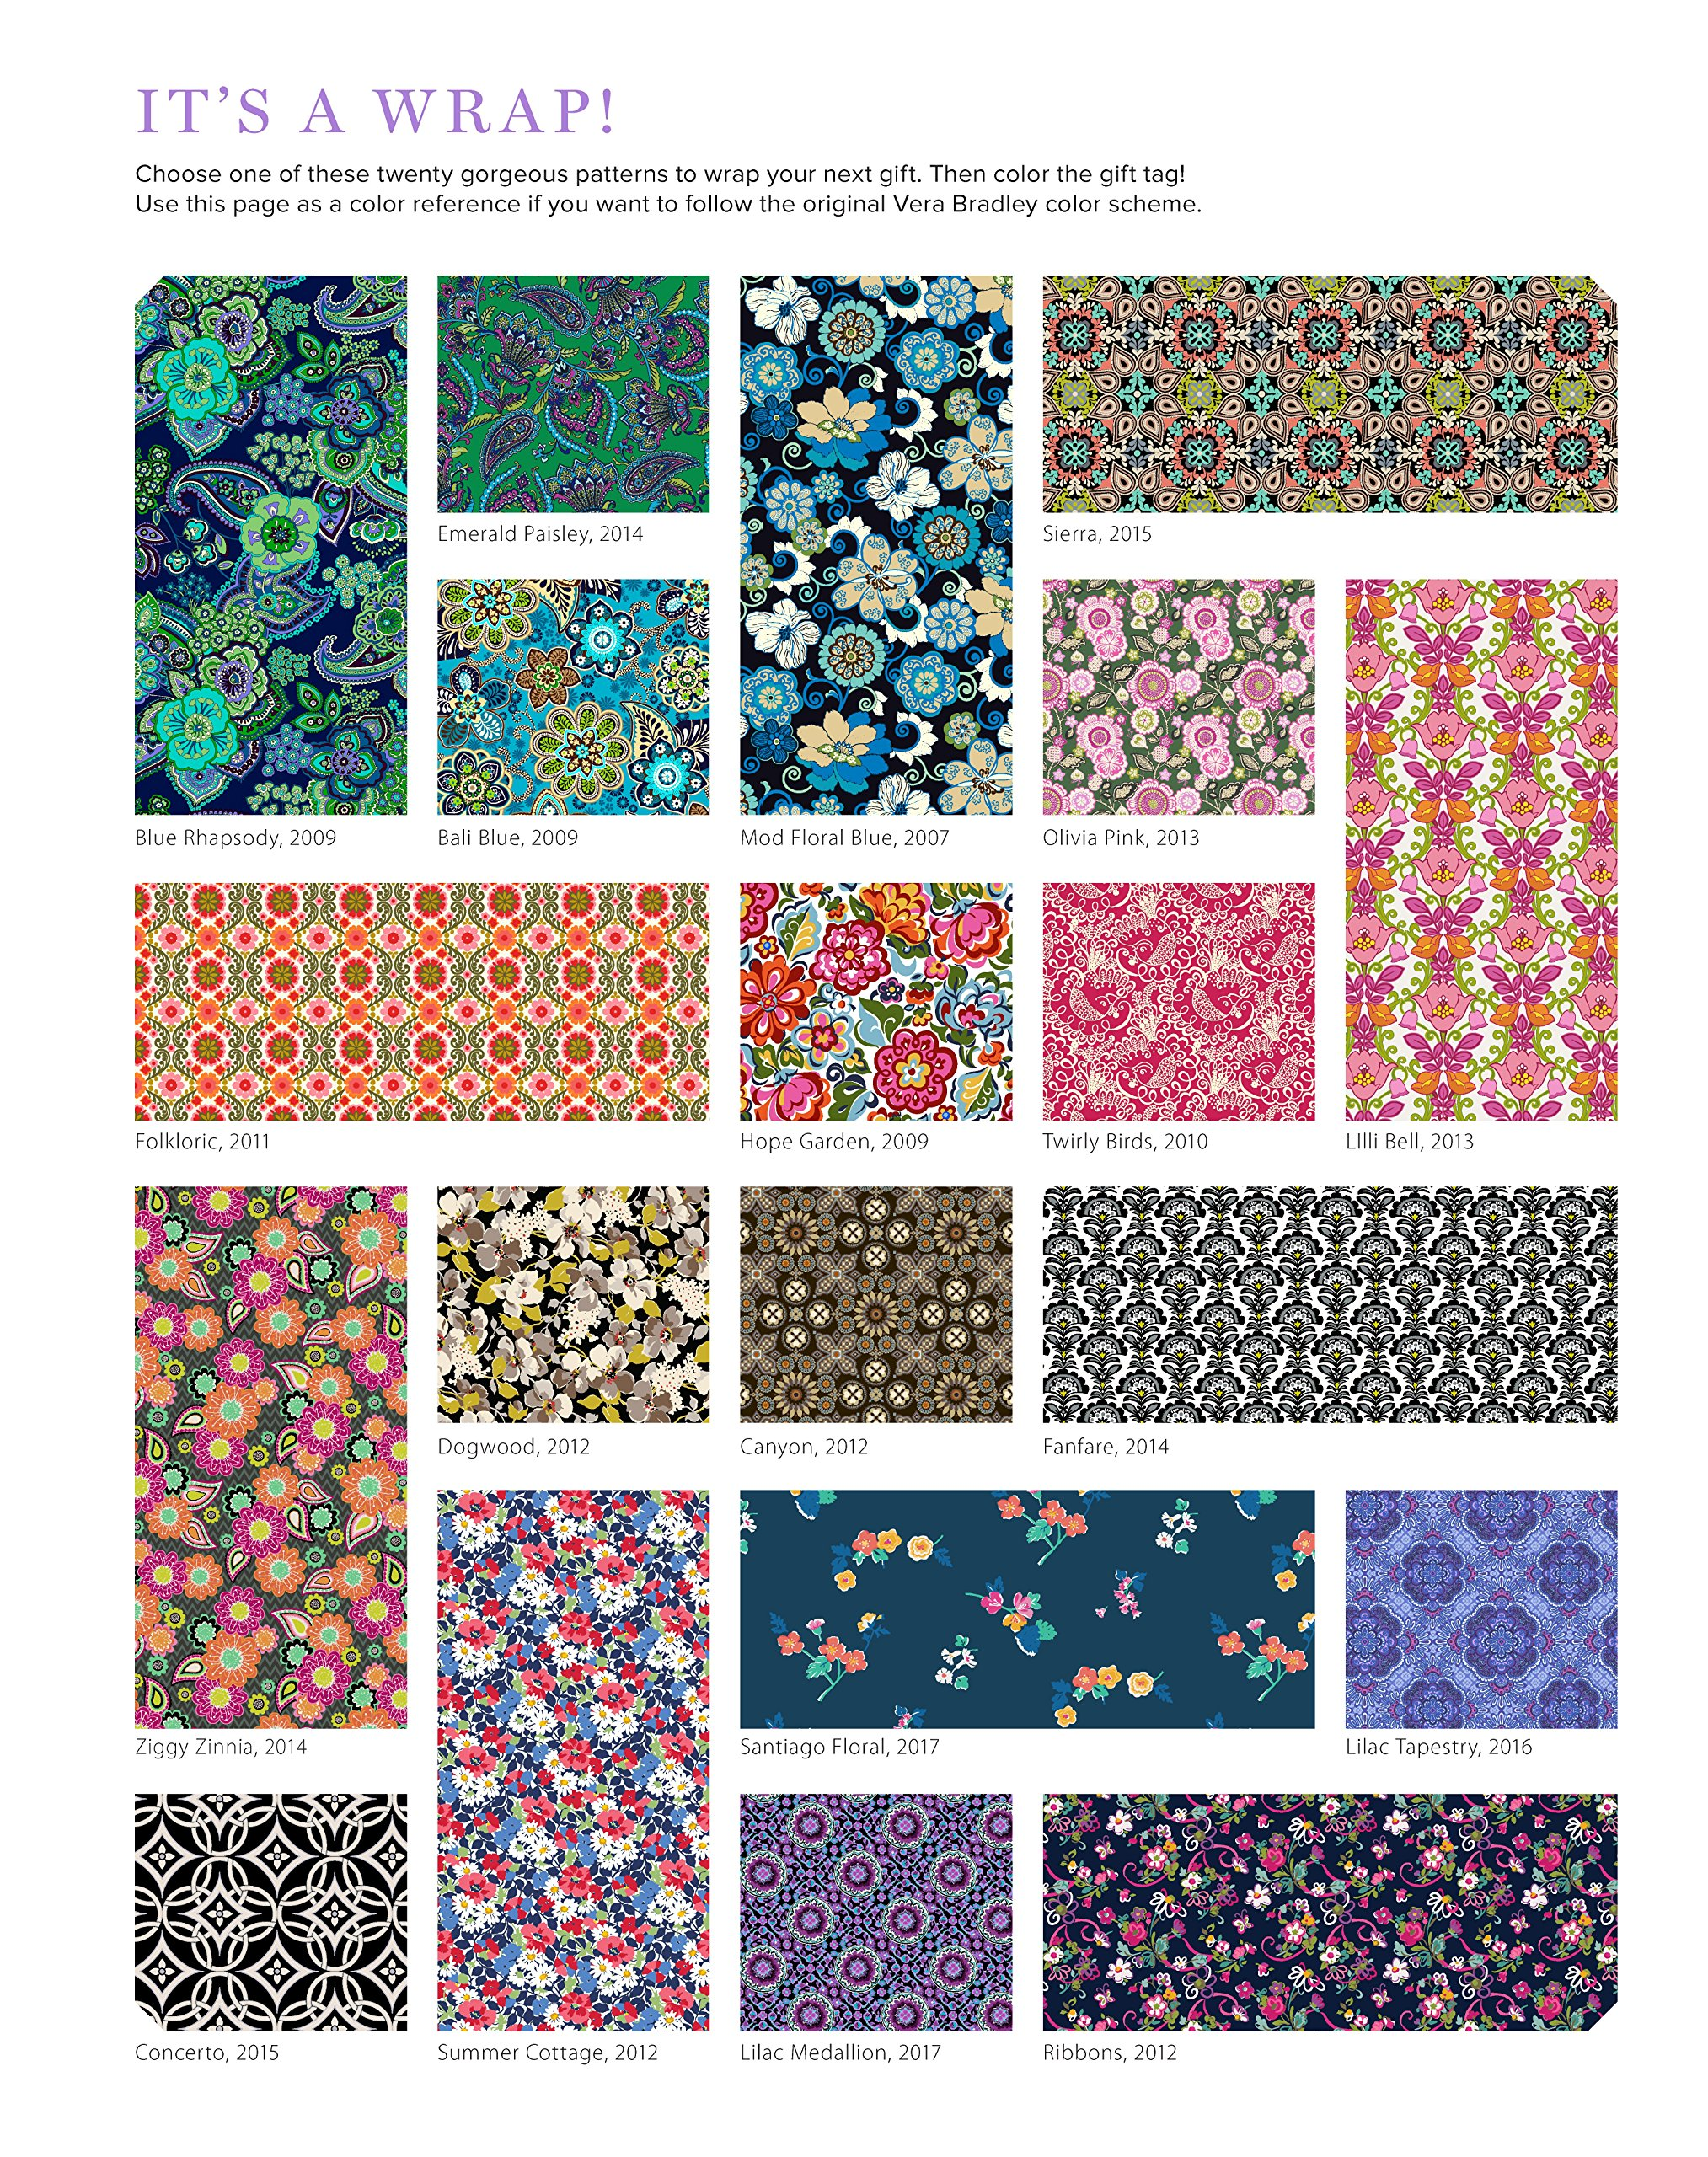 Vera Bradley Birthday Bash Wrapping Paper  20 Sheets to Craft, Wrap   Love  (Design Originals) 18-inch by 24-inch Patterns Perfect for Birthday Gifts,  ... 2d93d1dc8a